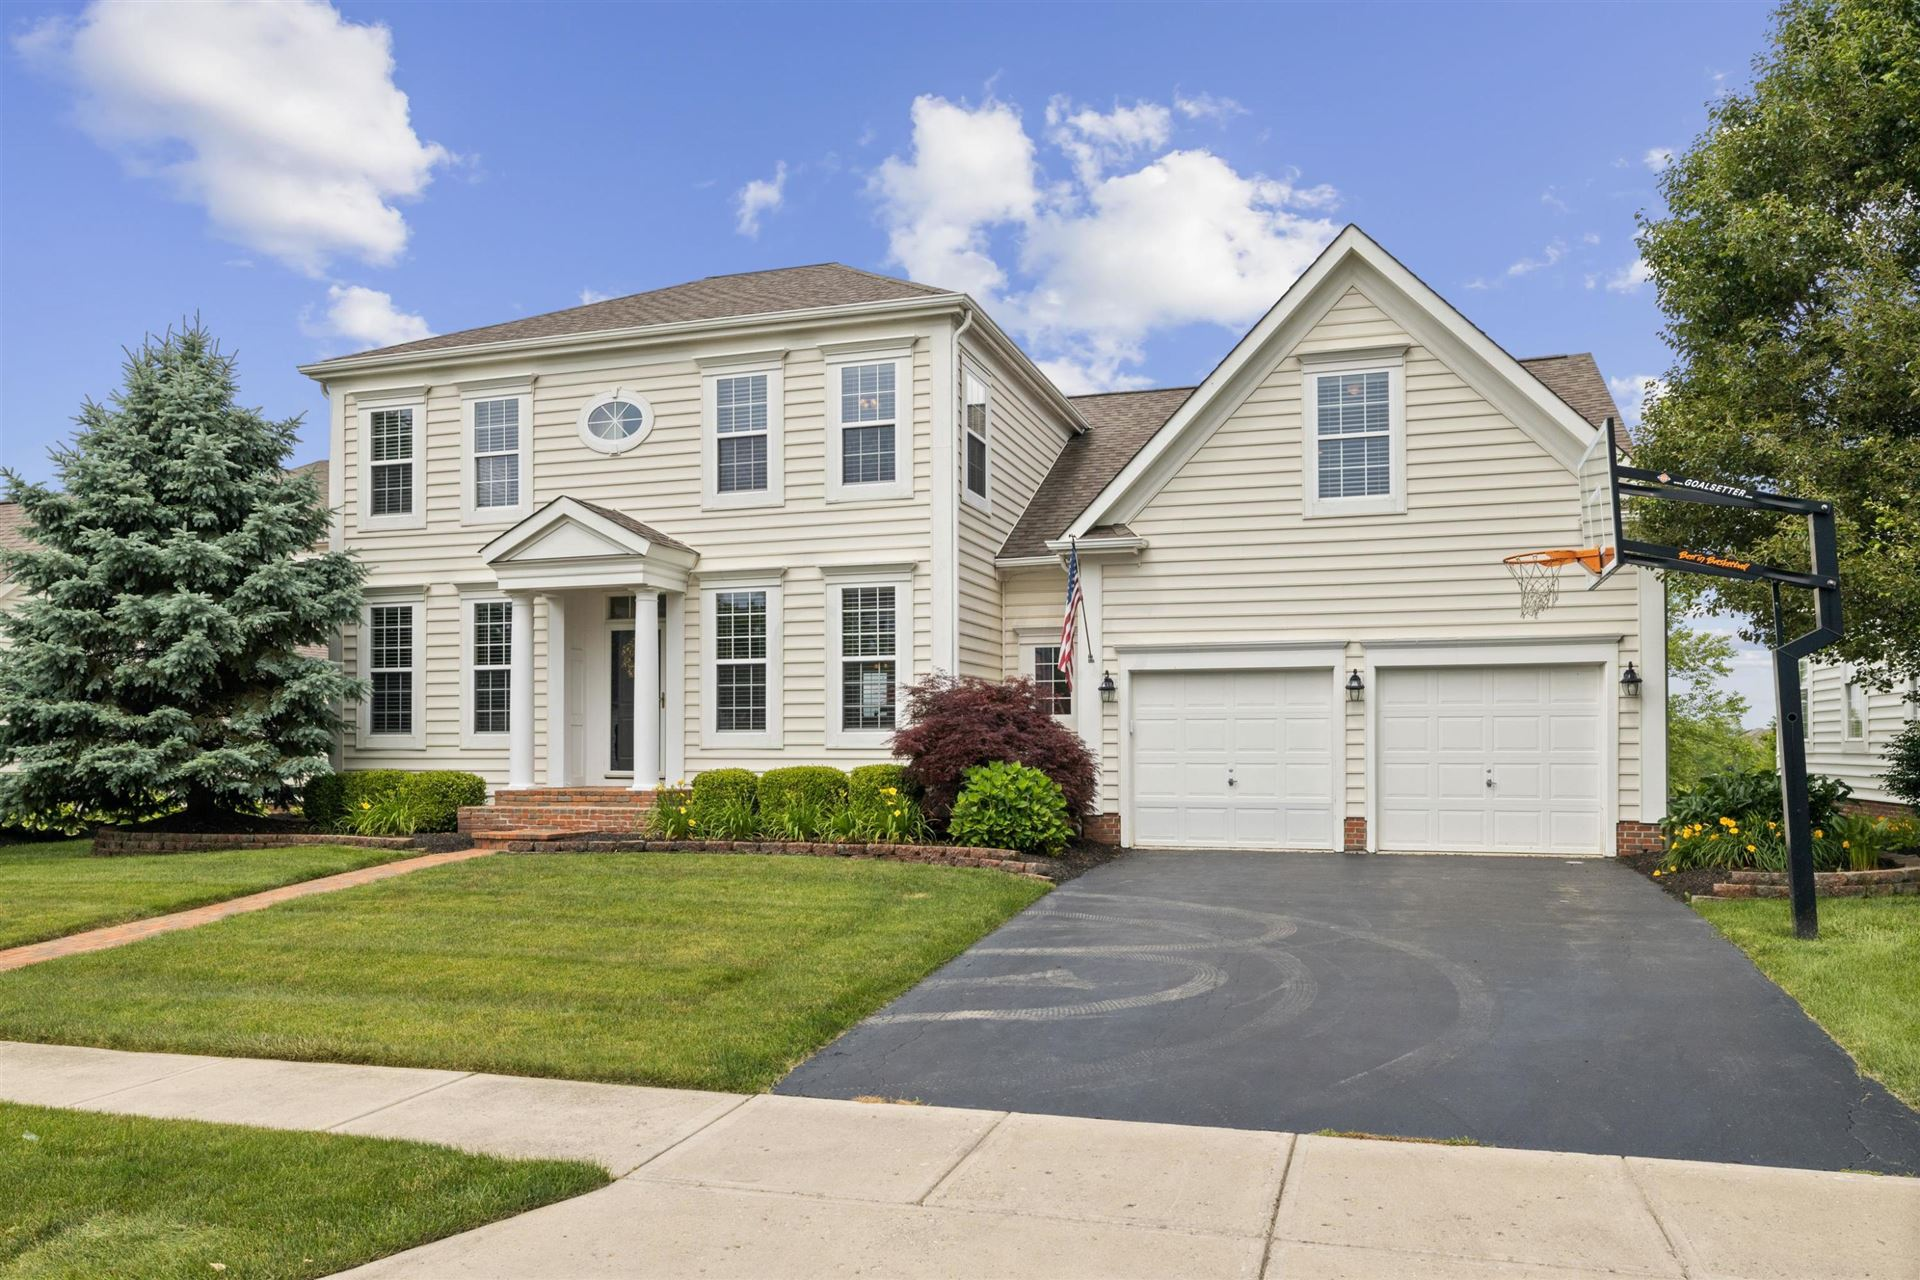 Photo for 6935 Cunningham Drive, New Albany, OH 43054 (MLS # 221020626)